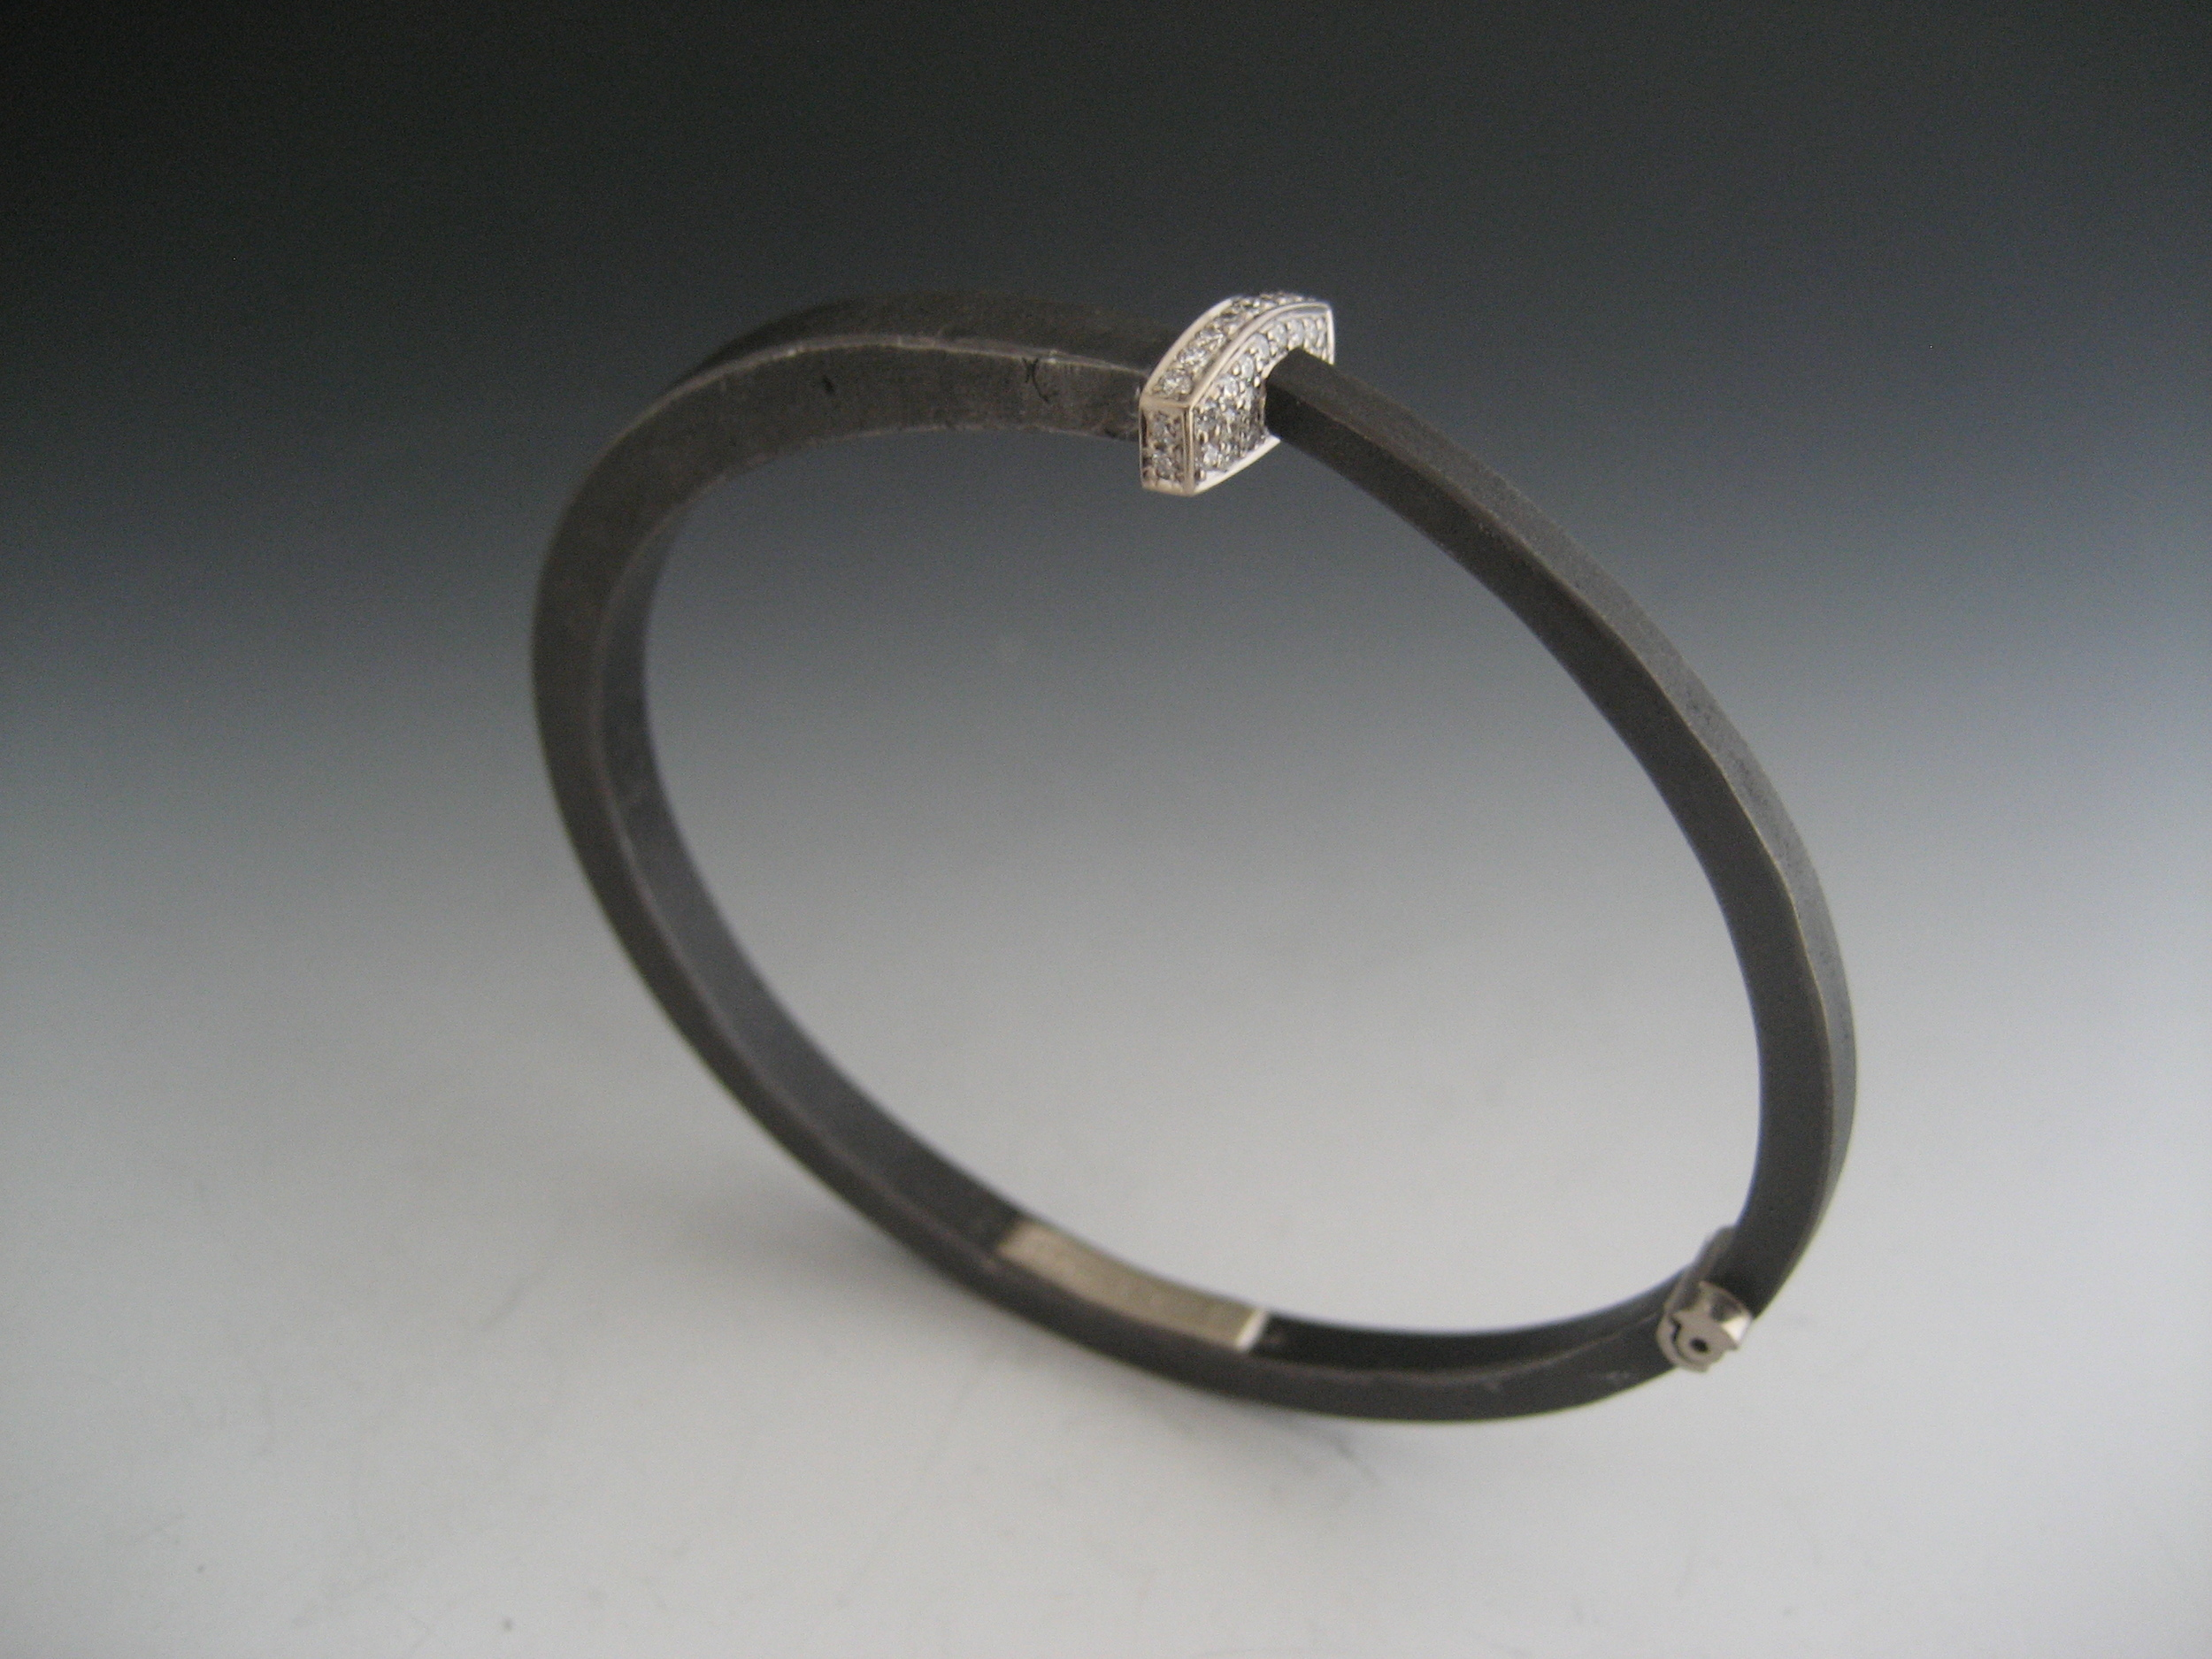 w iron flynn bangle pf products head pave by pat nail diamond bracelet